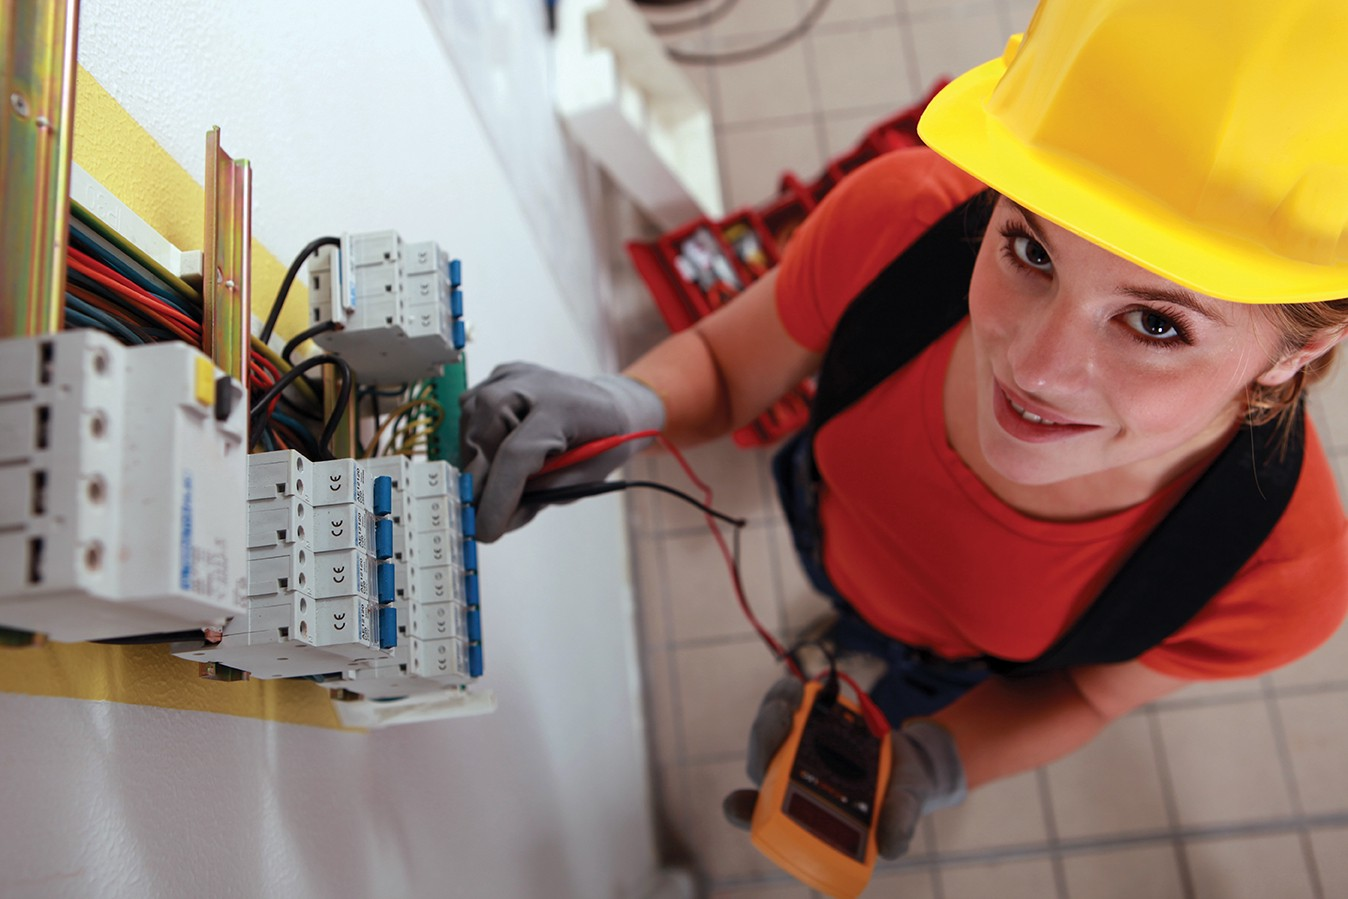 Five Trick Solutions A Residential Electrician Deals Pics Photos Do It Yourself May Save You Cash To By However Is Best Have The Professional Get Job Done